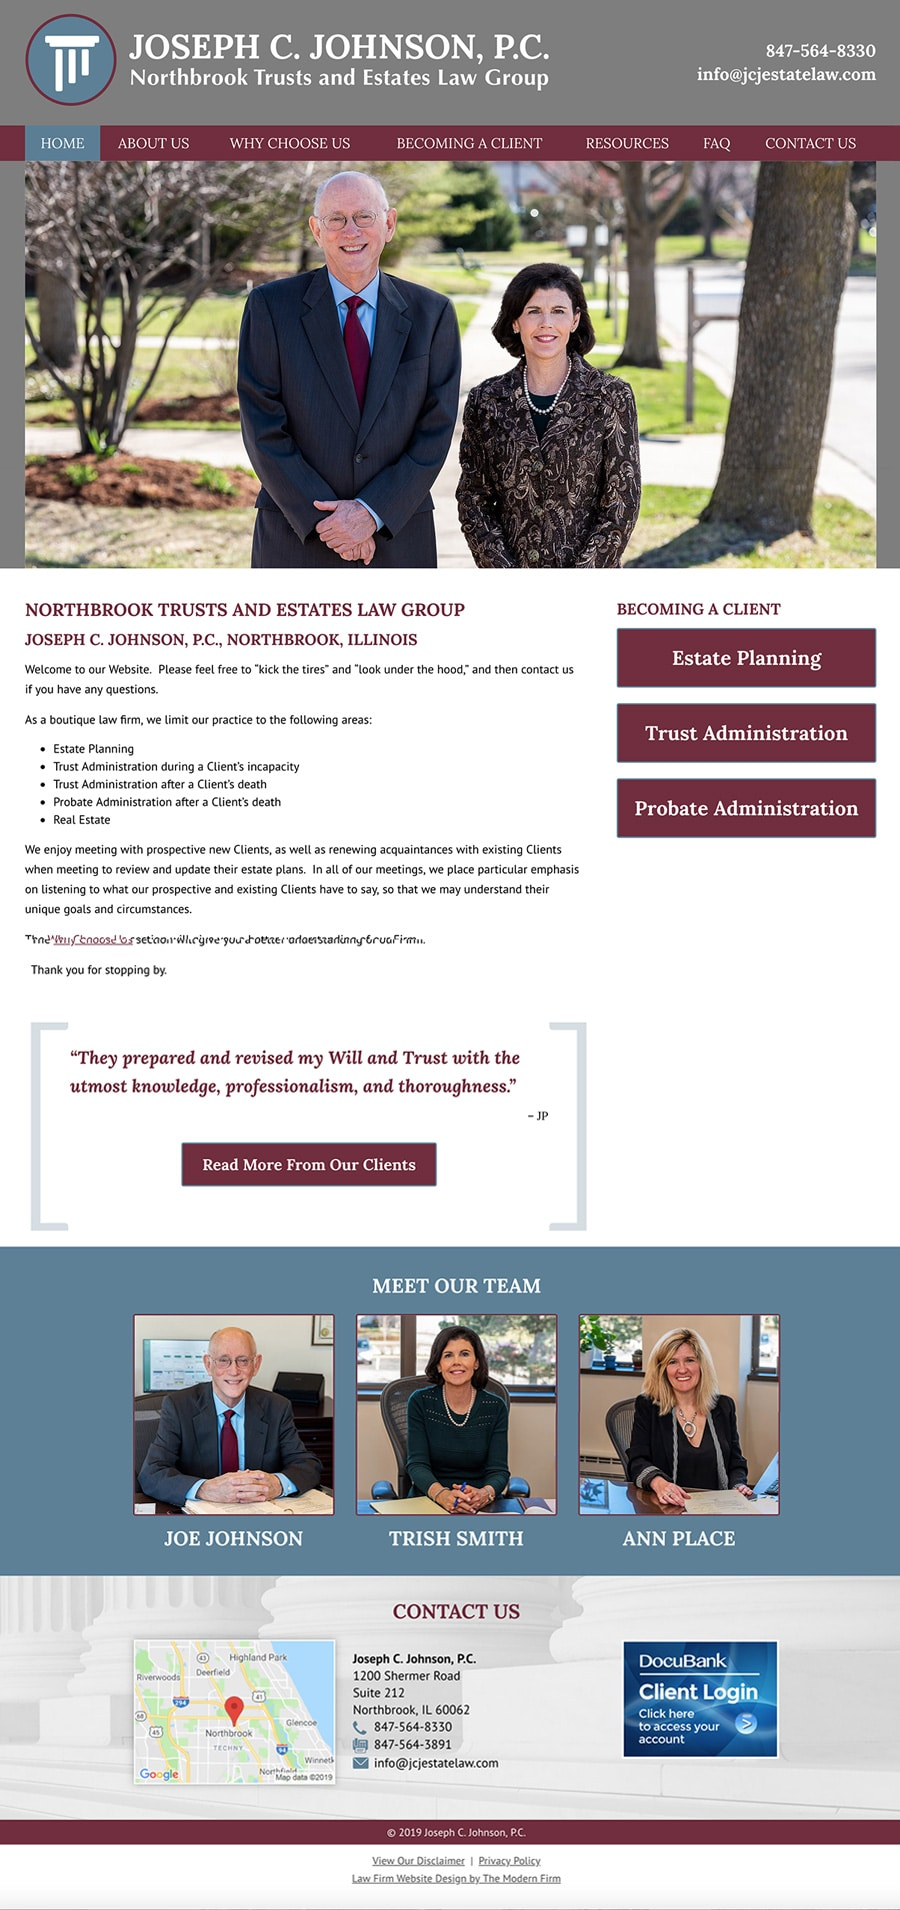 Law Firm Website Design for Joseph C. Johnson, P.C.